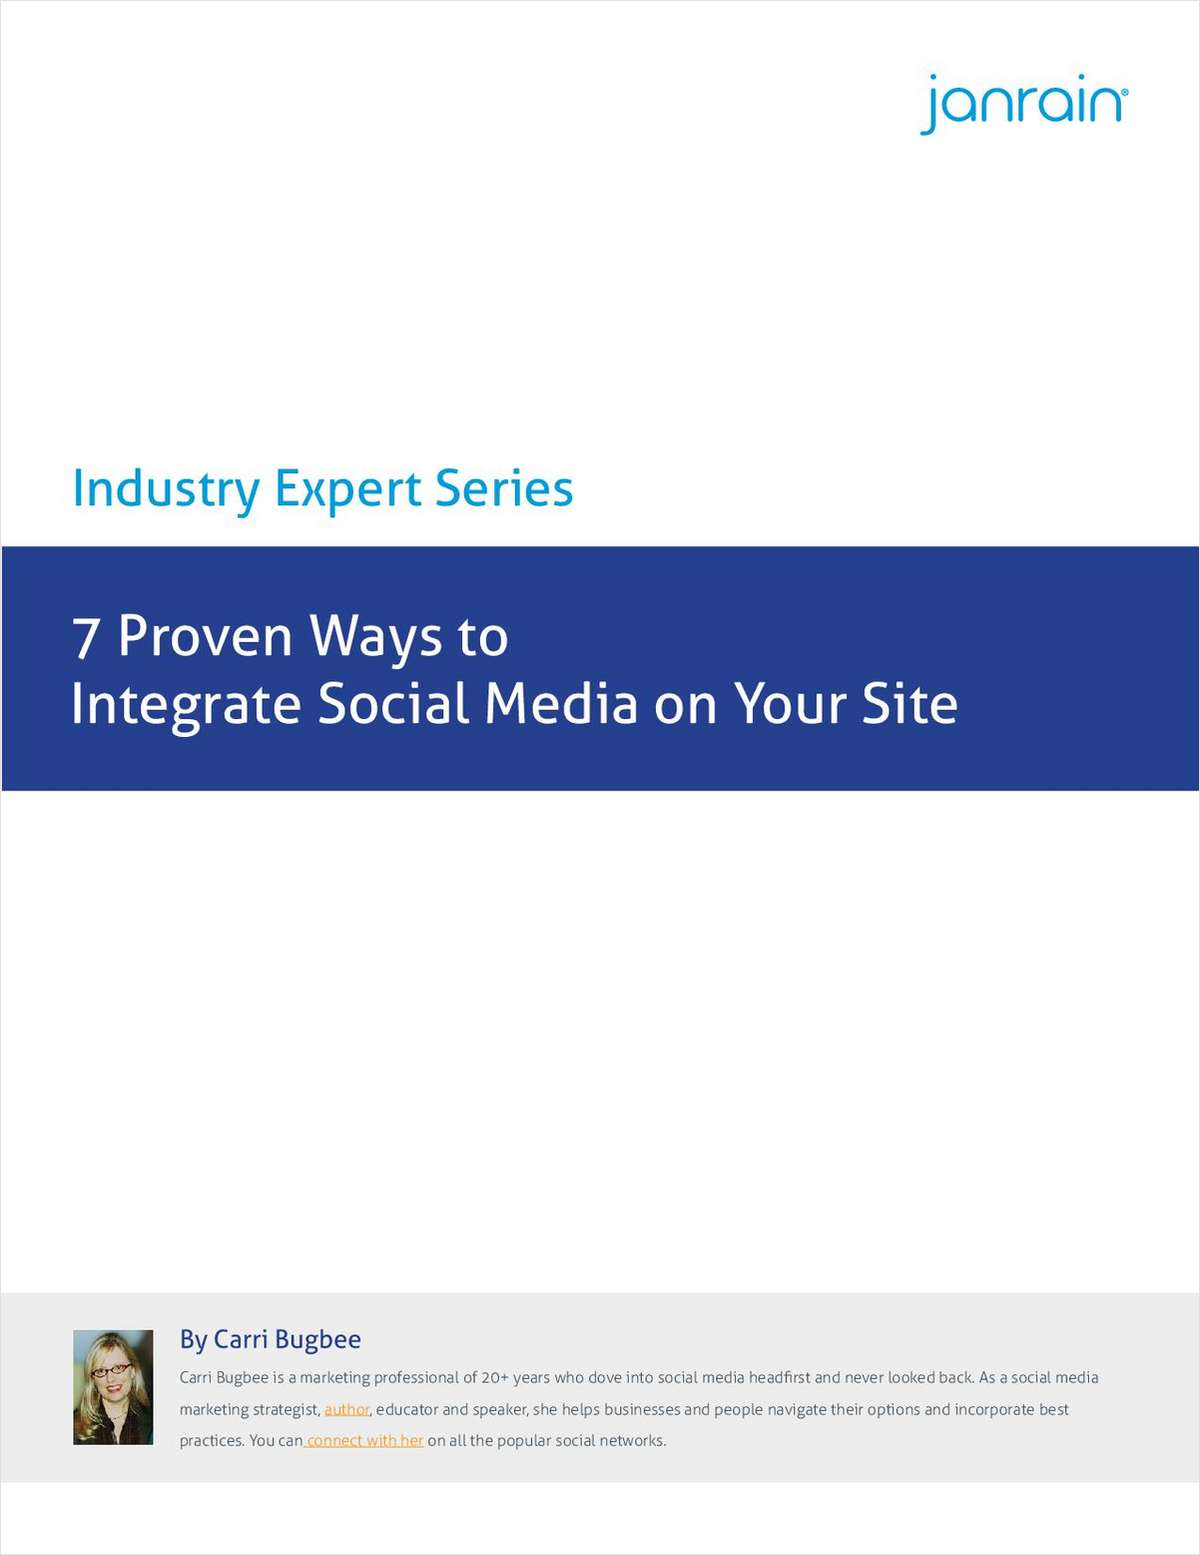 7 Proven Ways to Integrate Social Media with Your Site